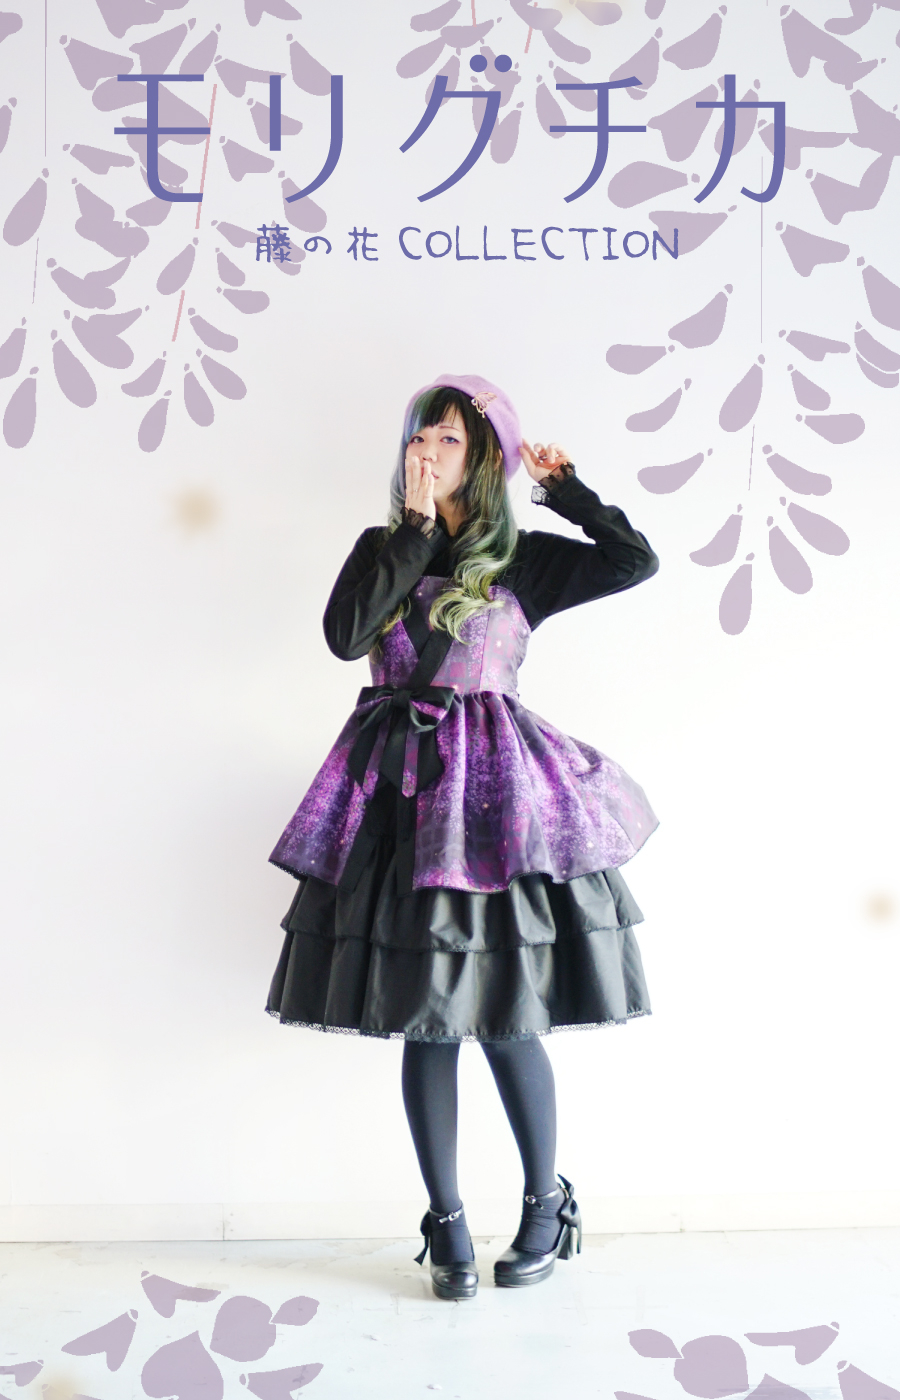 0111 藤の花COLLECTION